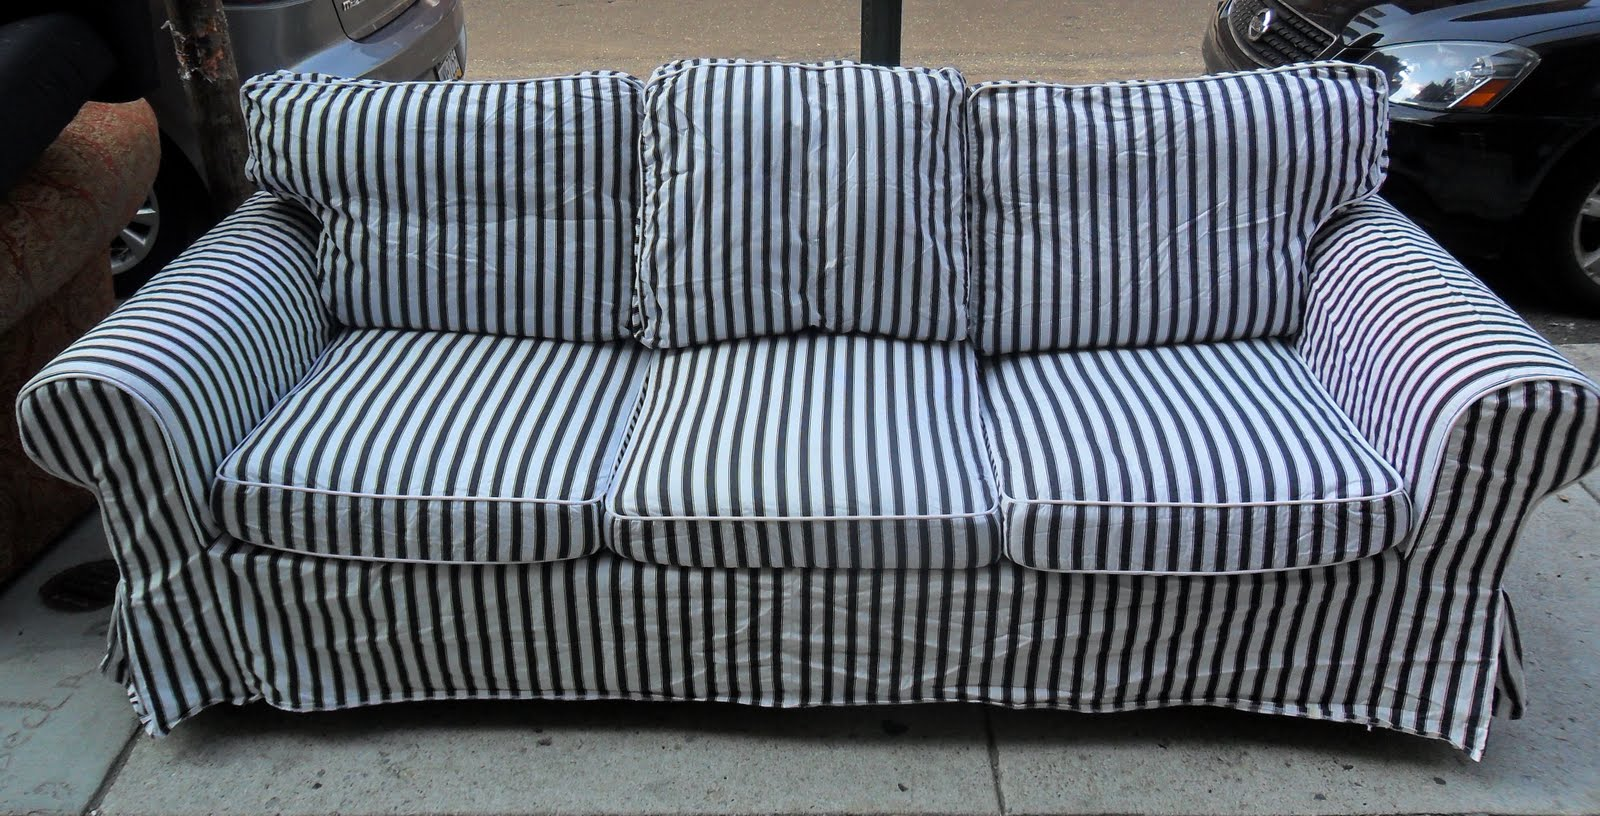 Tremendous Uhuru Furniture Collectibles Gorgeous Striped Couch Sold Creativecarmelina Interior Chair Design Creativecarmelinacom